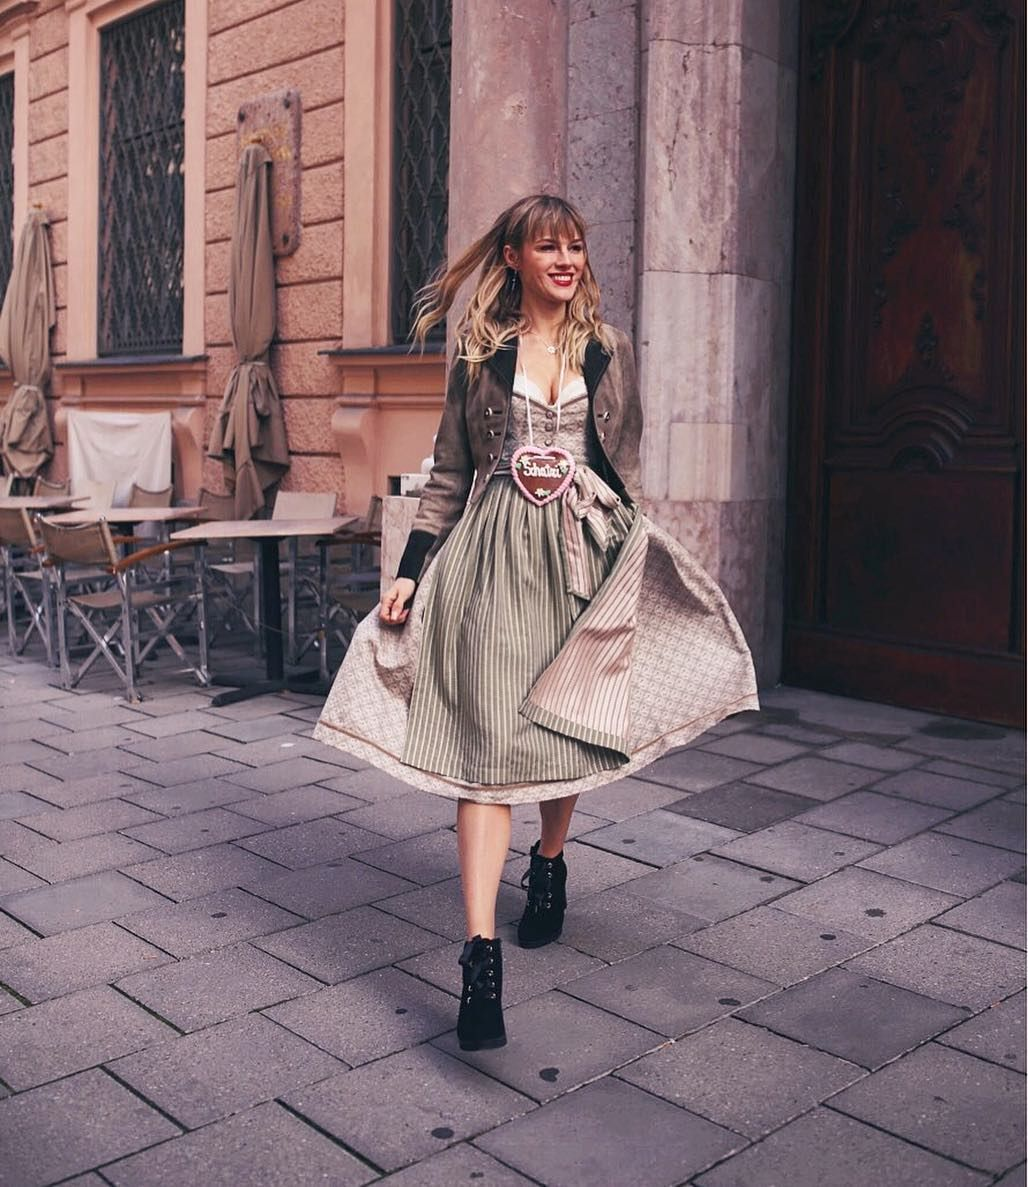 vcy.w in unserem CocoVero Dirndl Josephine mit Lederjacke